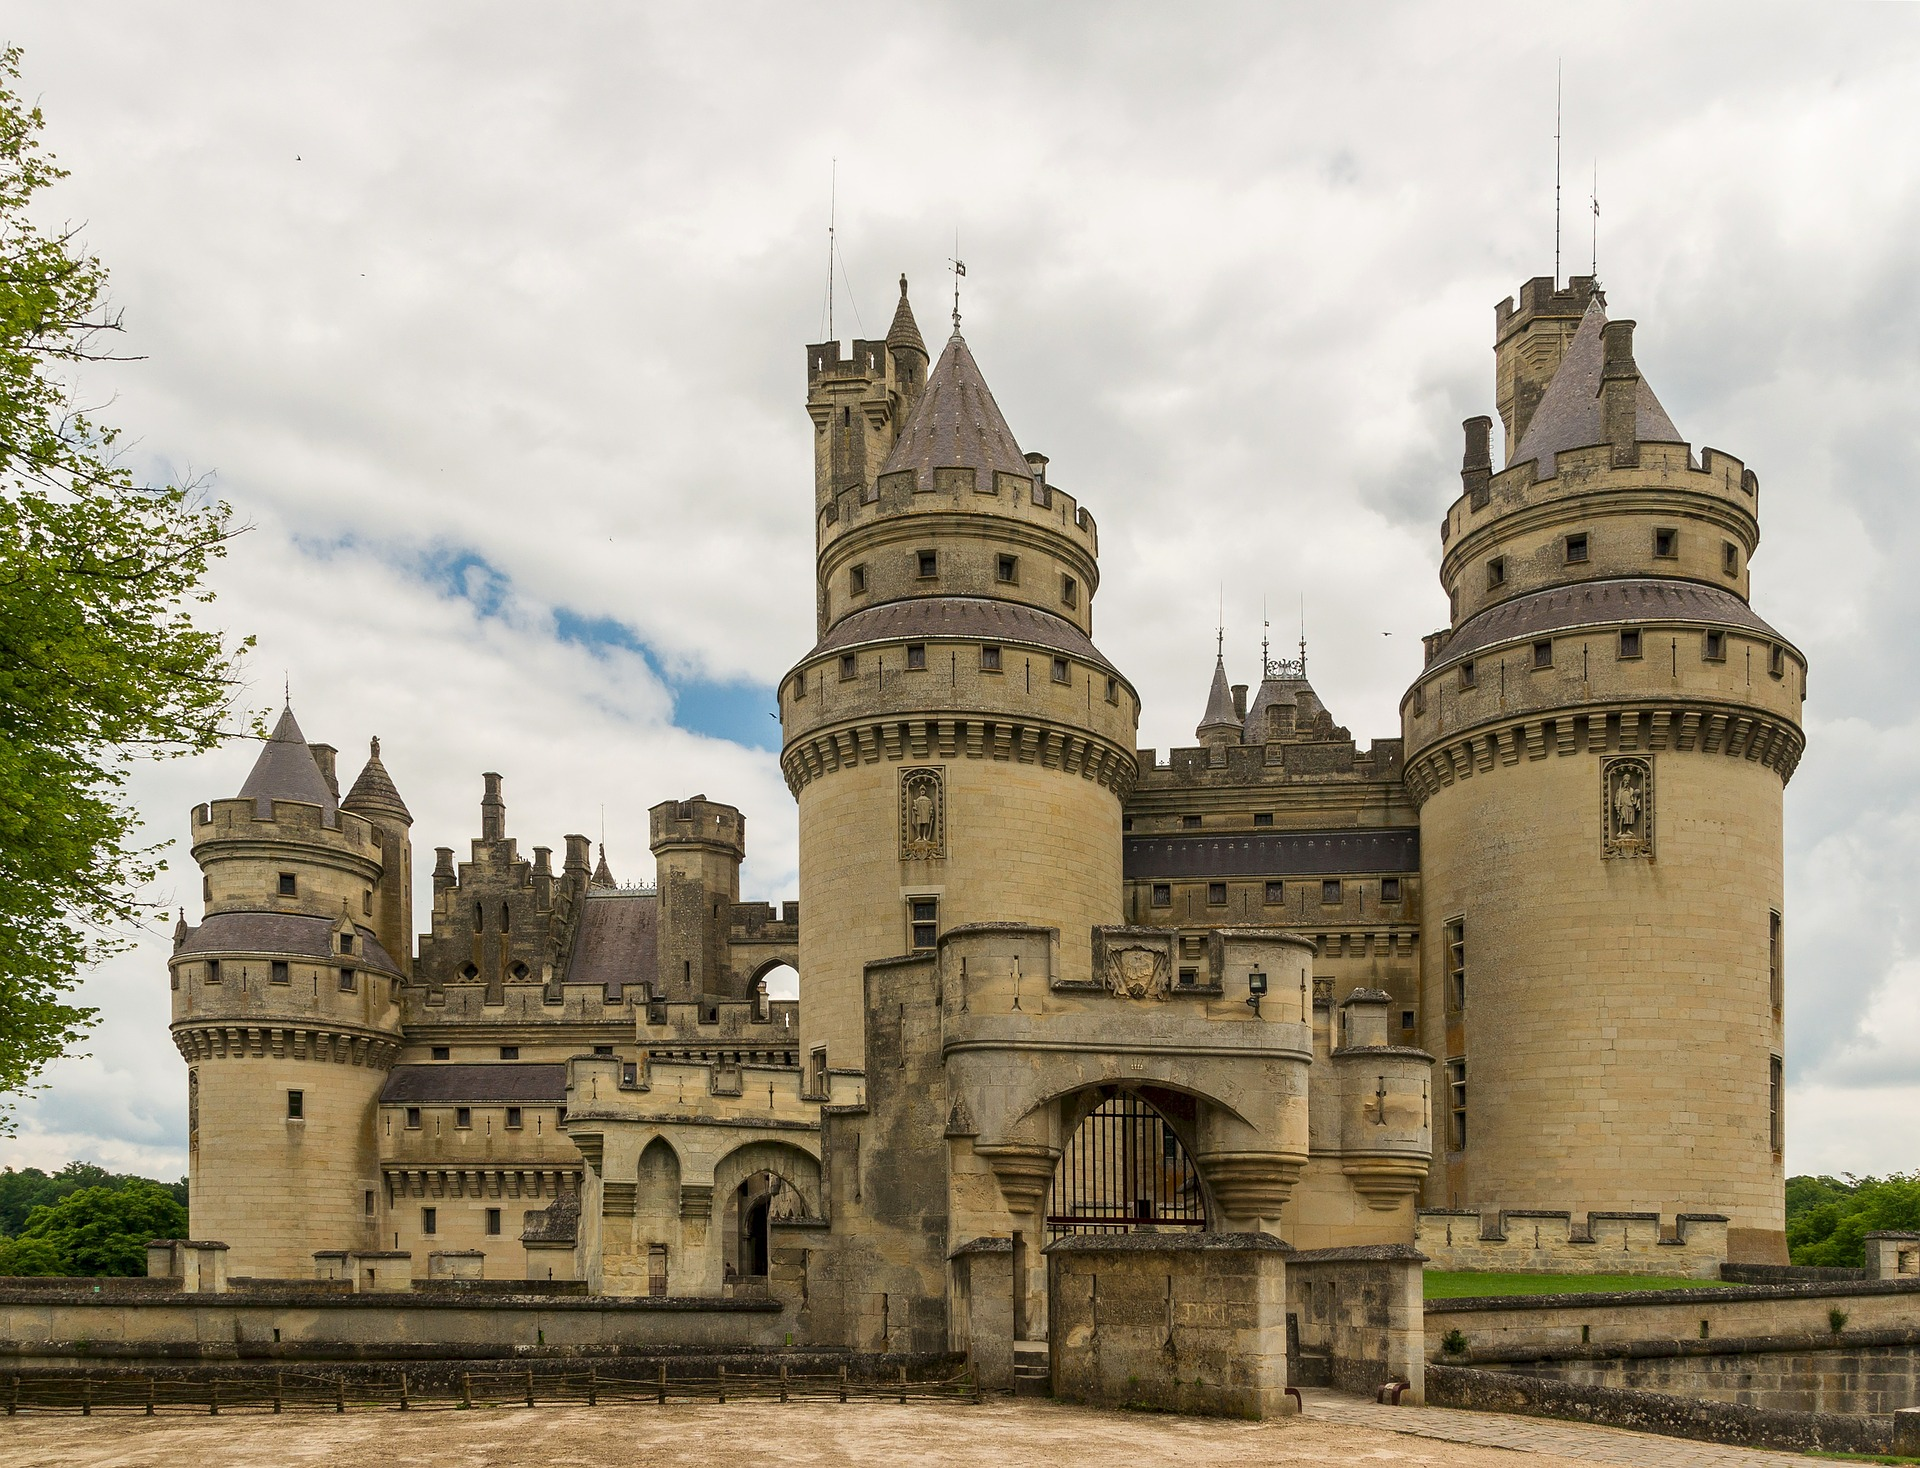 pierrefonds-castle-535531_1920 (1)